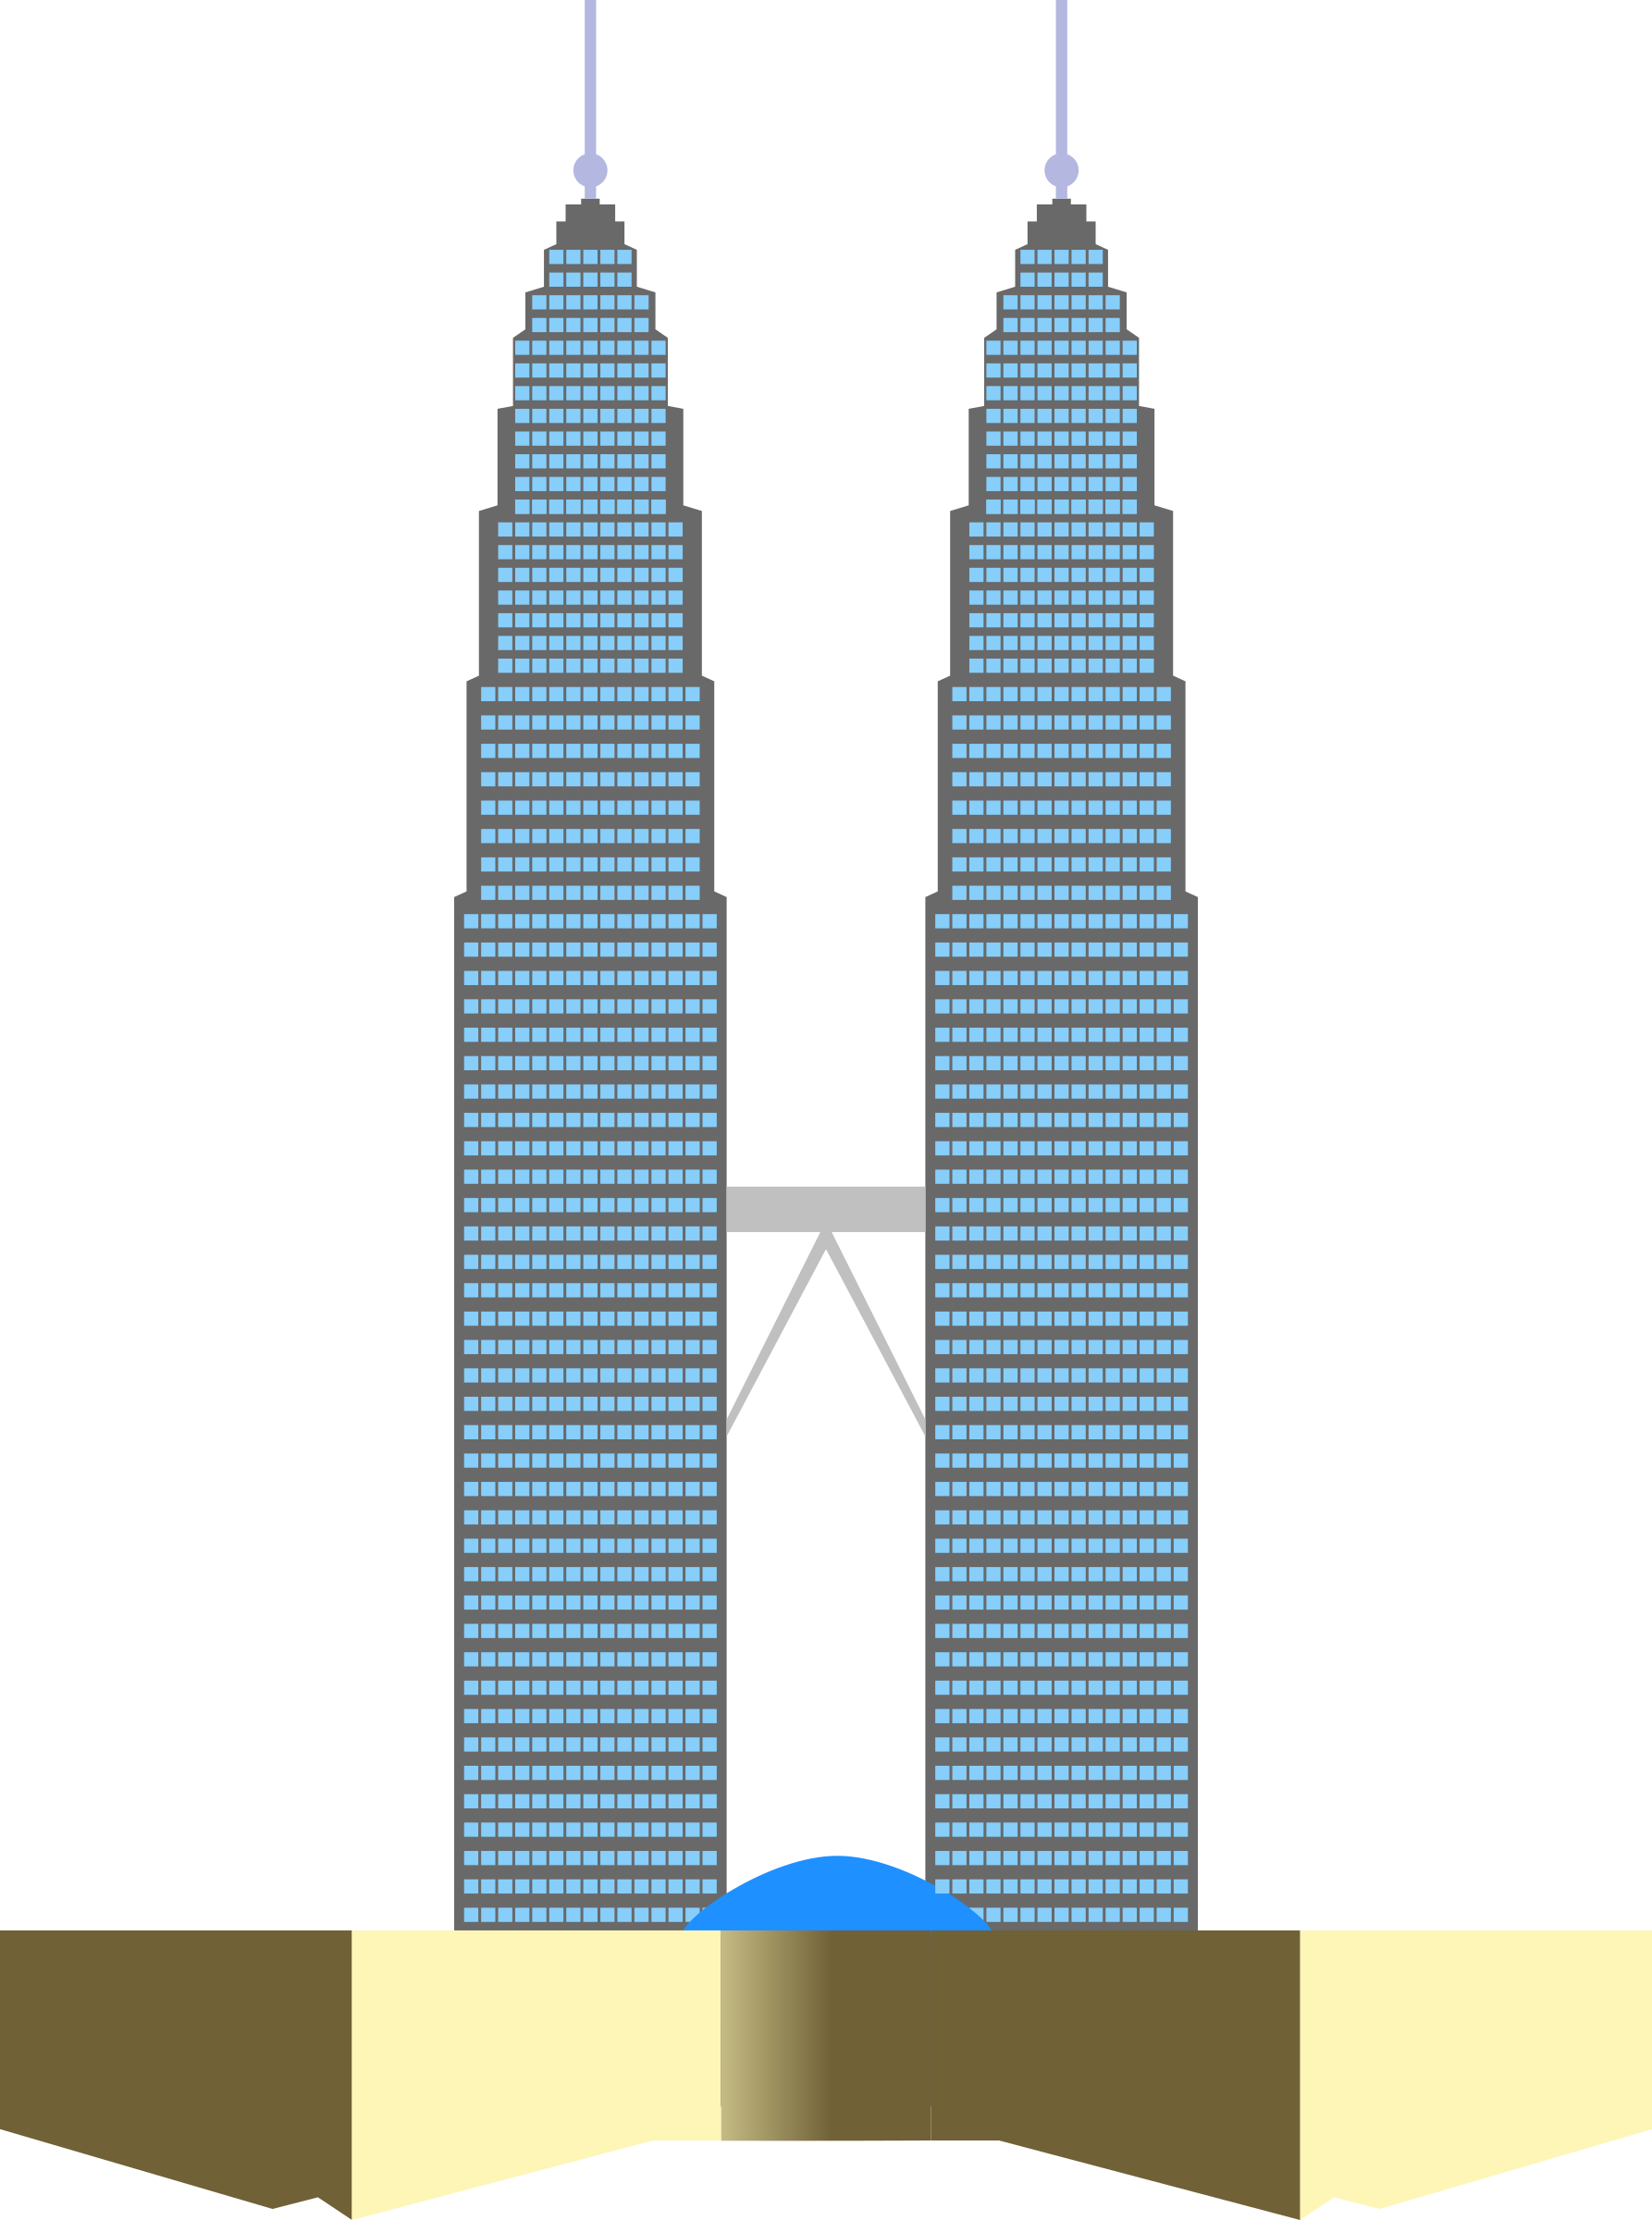 Tower clipart building tower. Petronas twin towers big